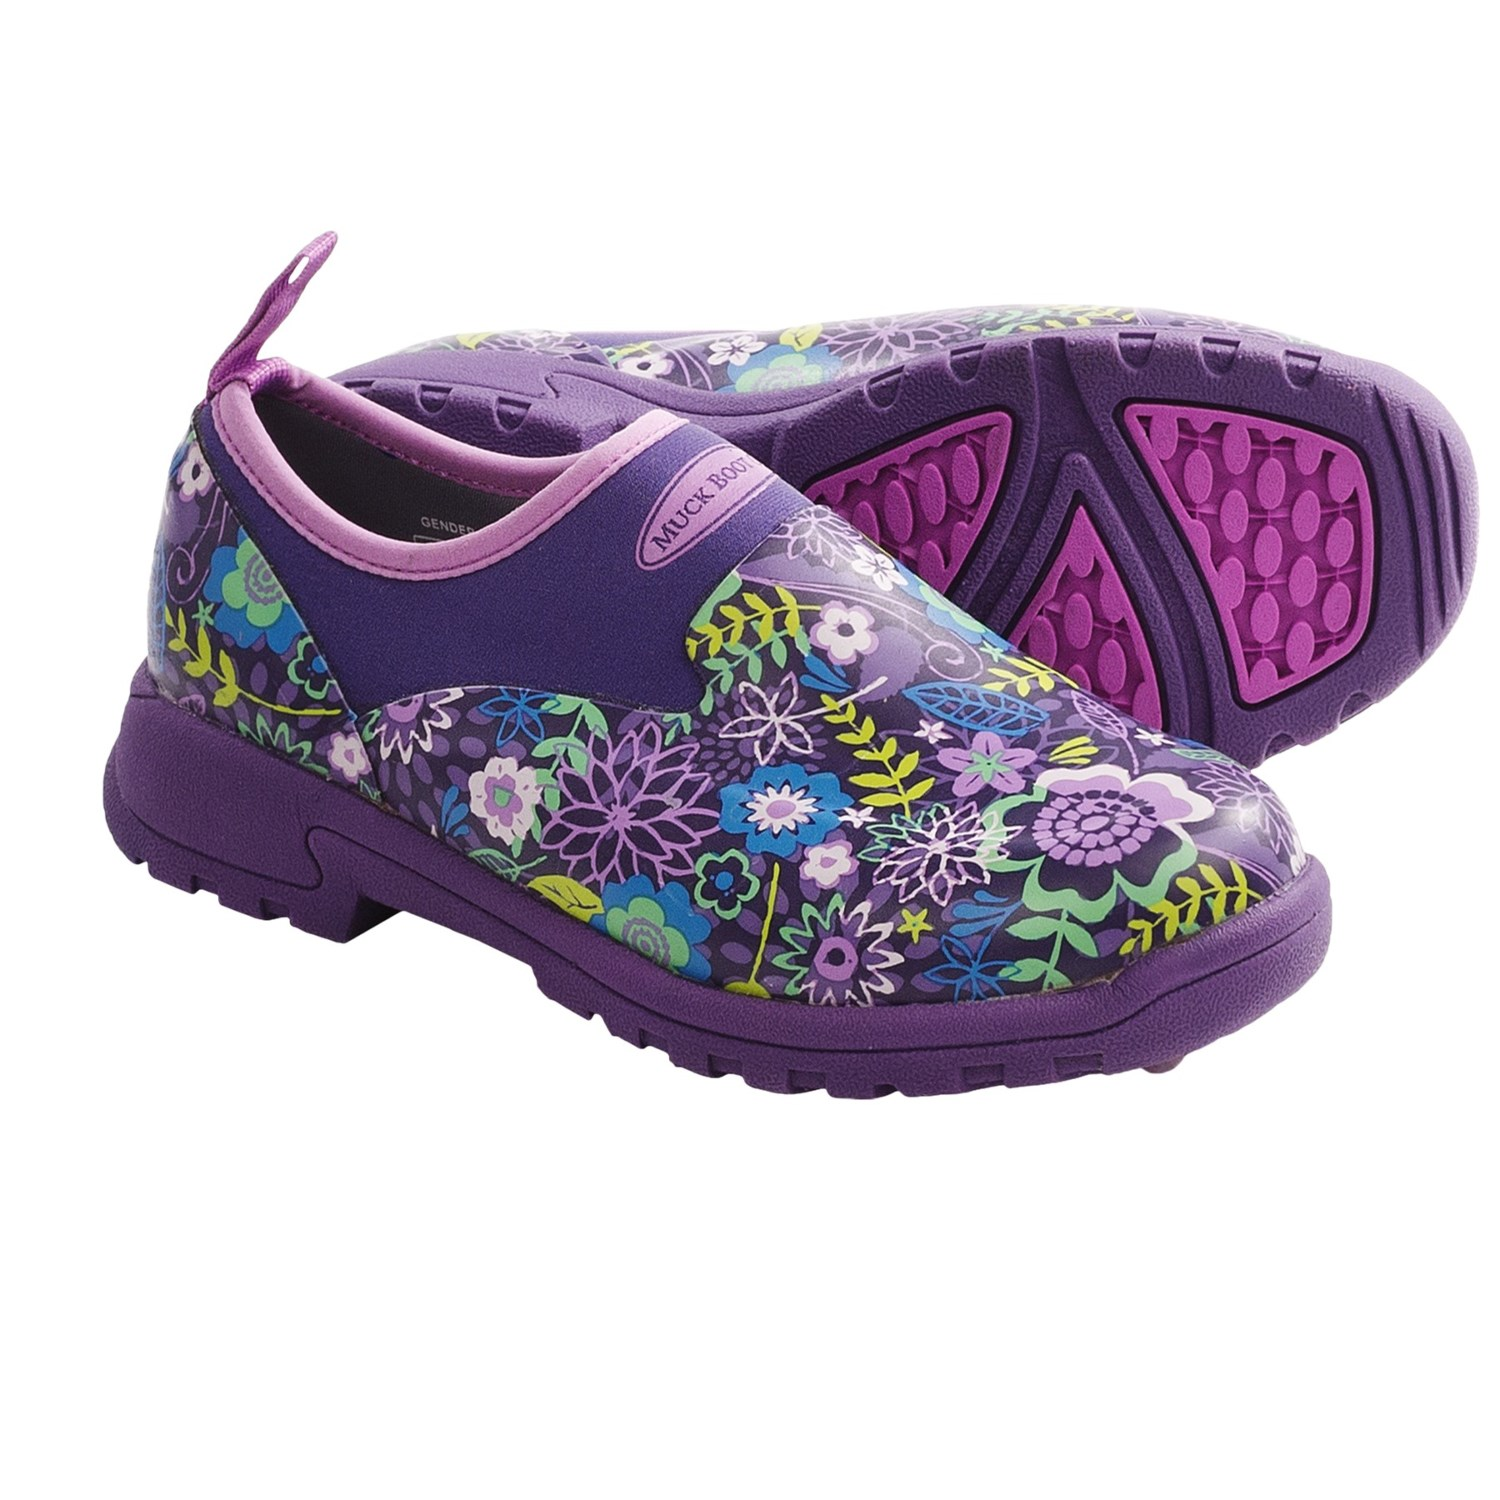 Cool Shoes For Girls Muck boot company breezy low cool shoes